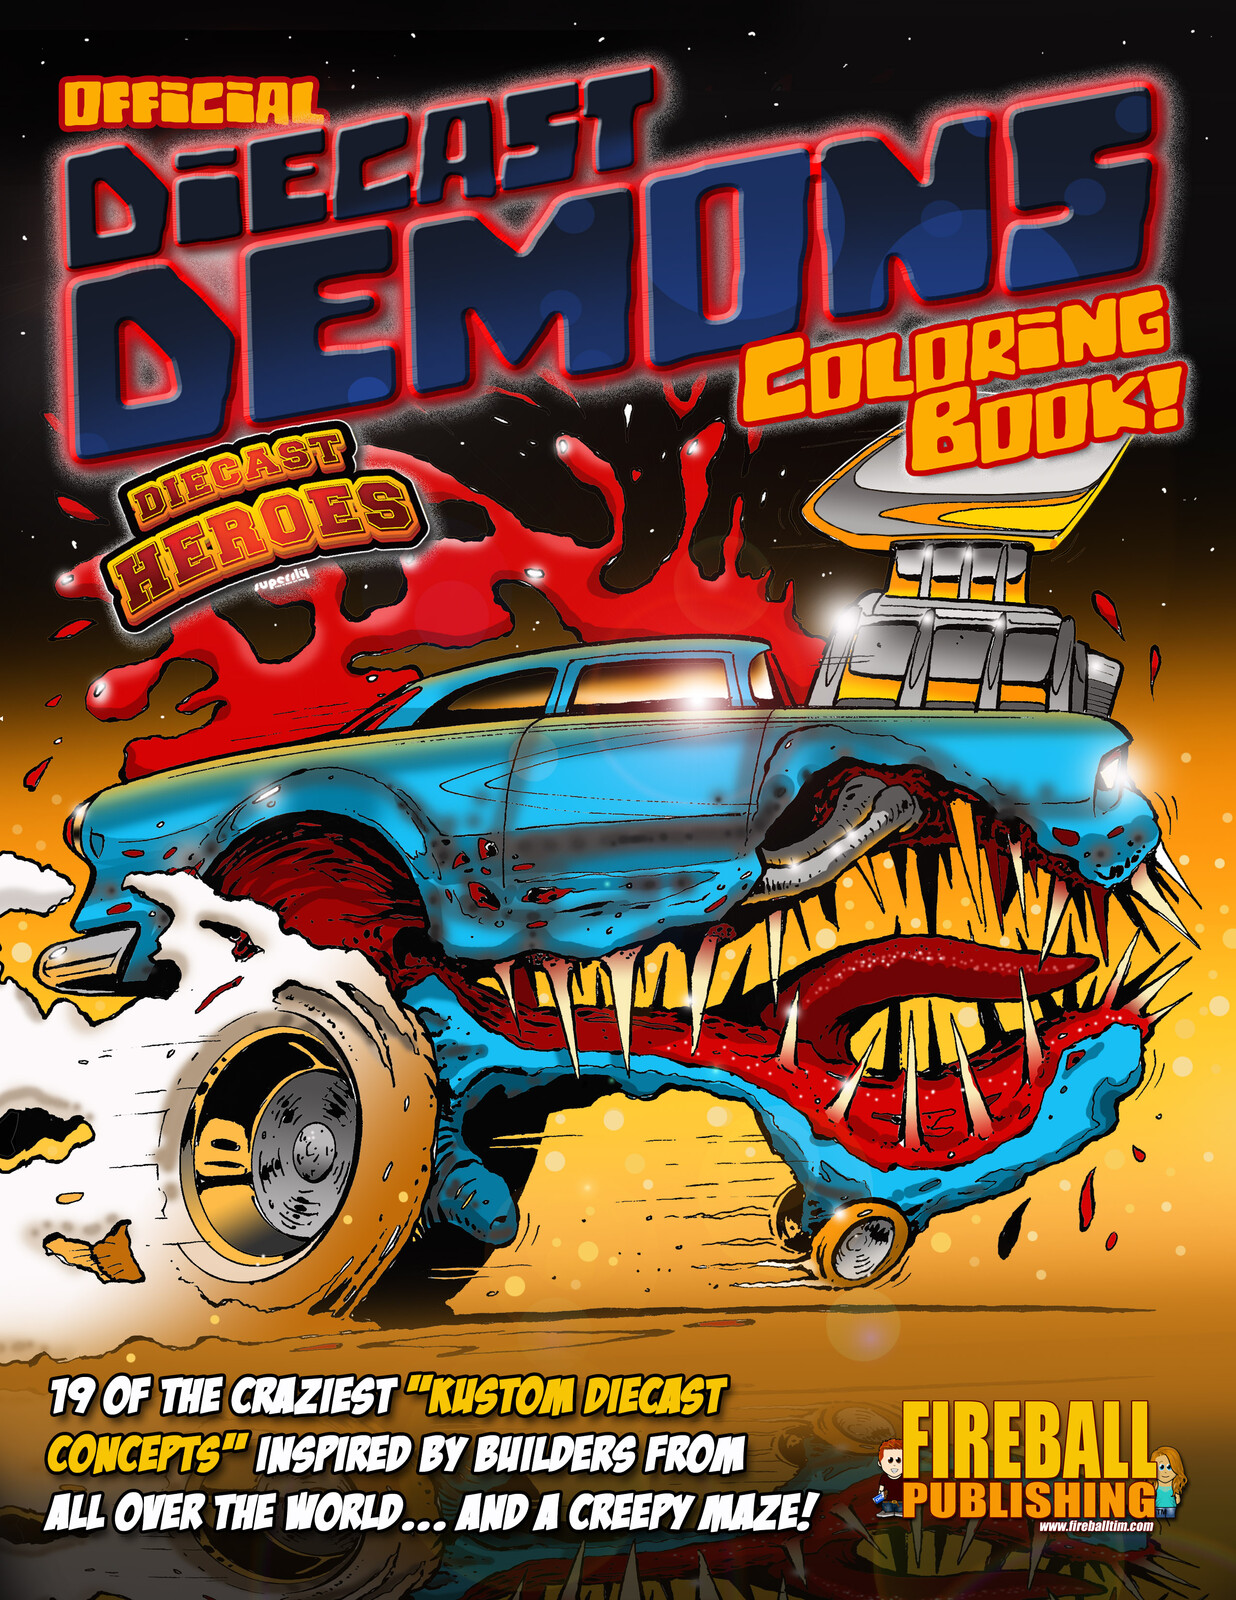 Official DIECAST DEMONS Coloring Book